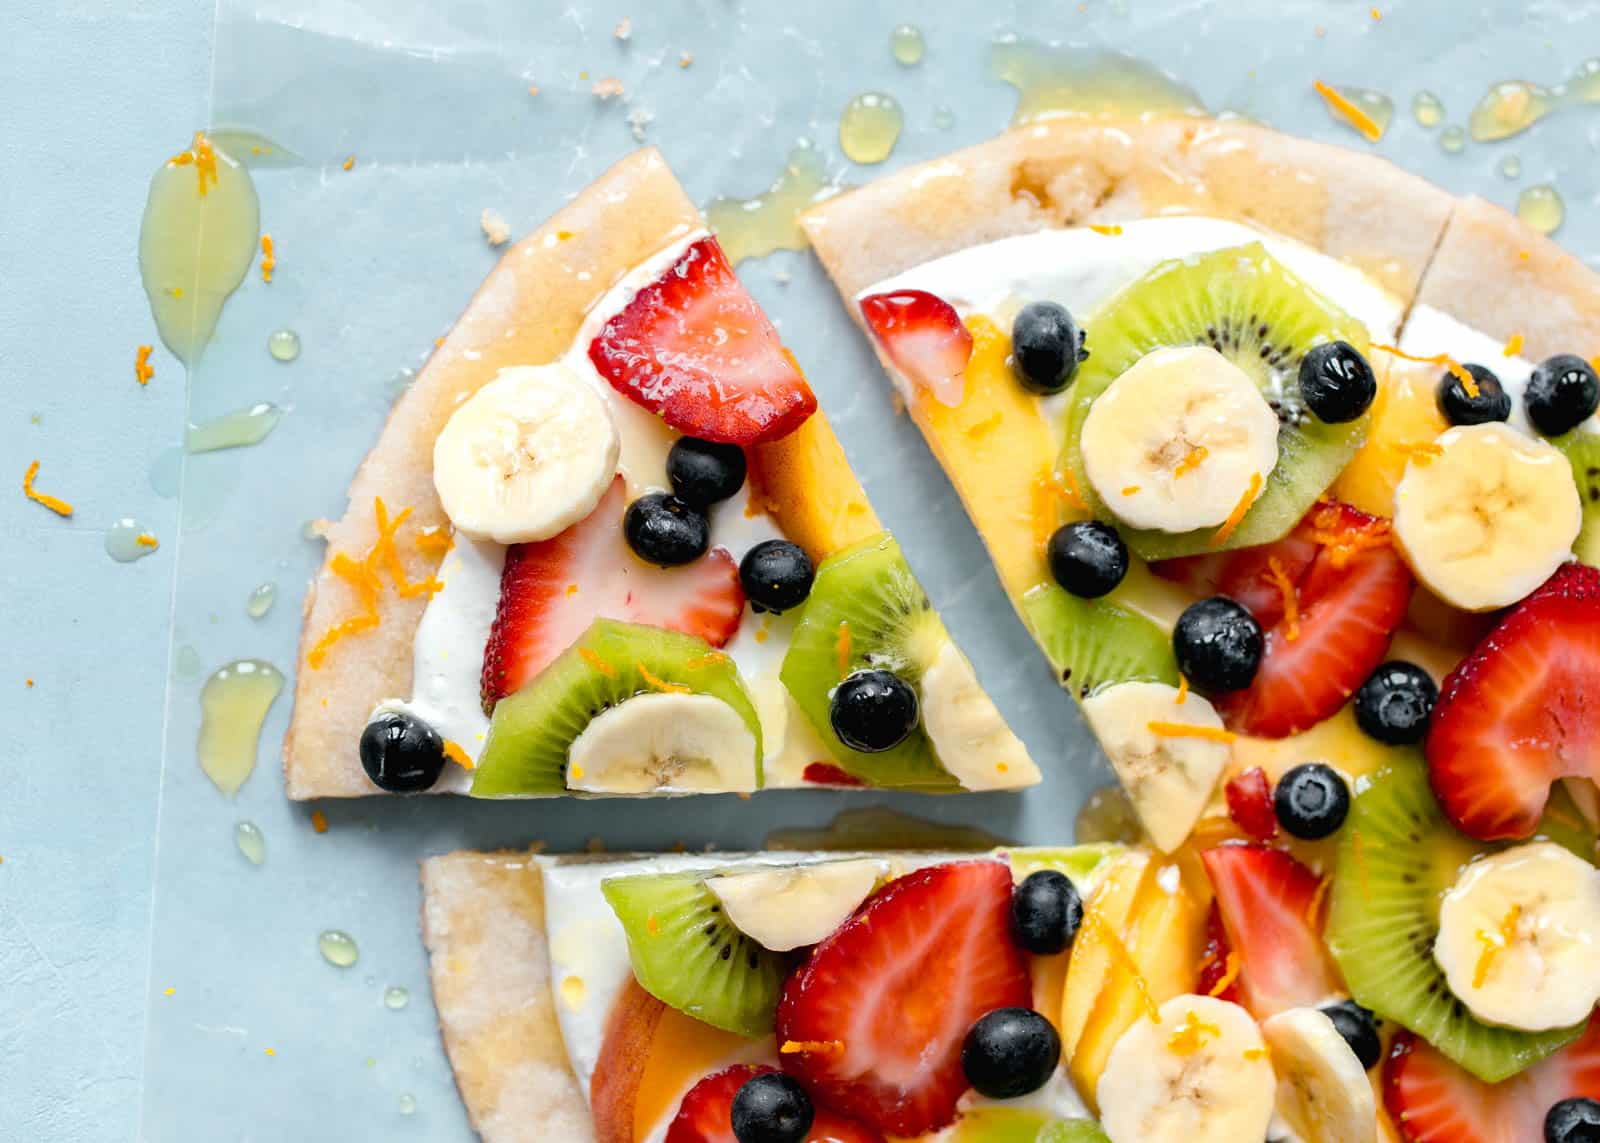 Resep Membuat Fruit Pizza